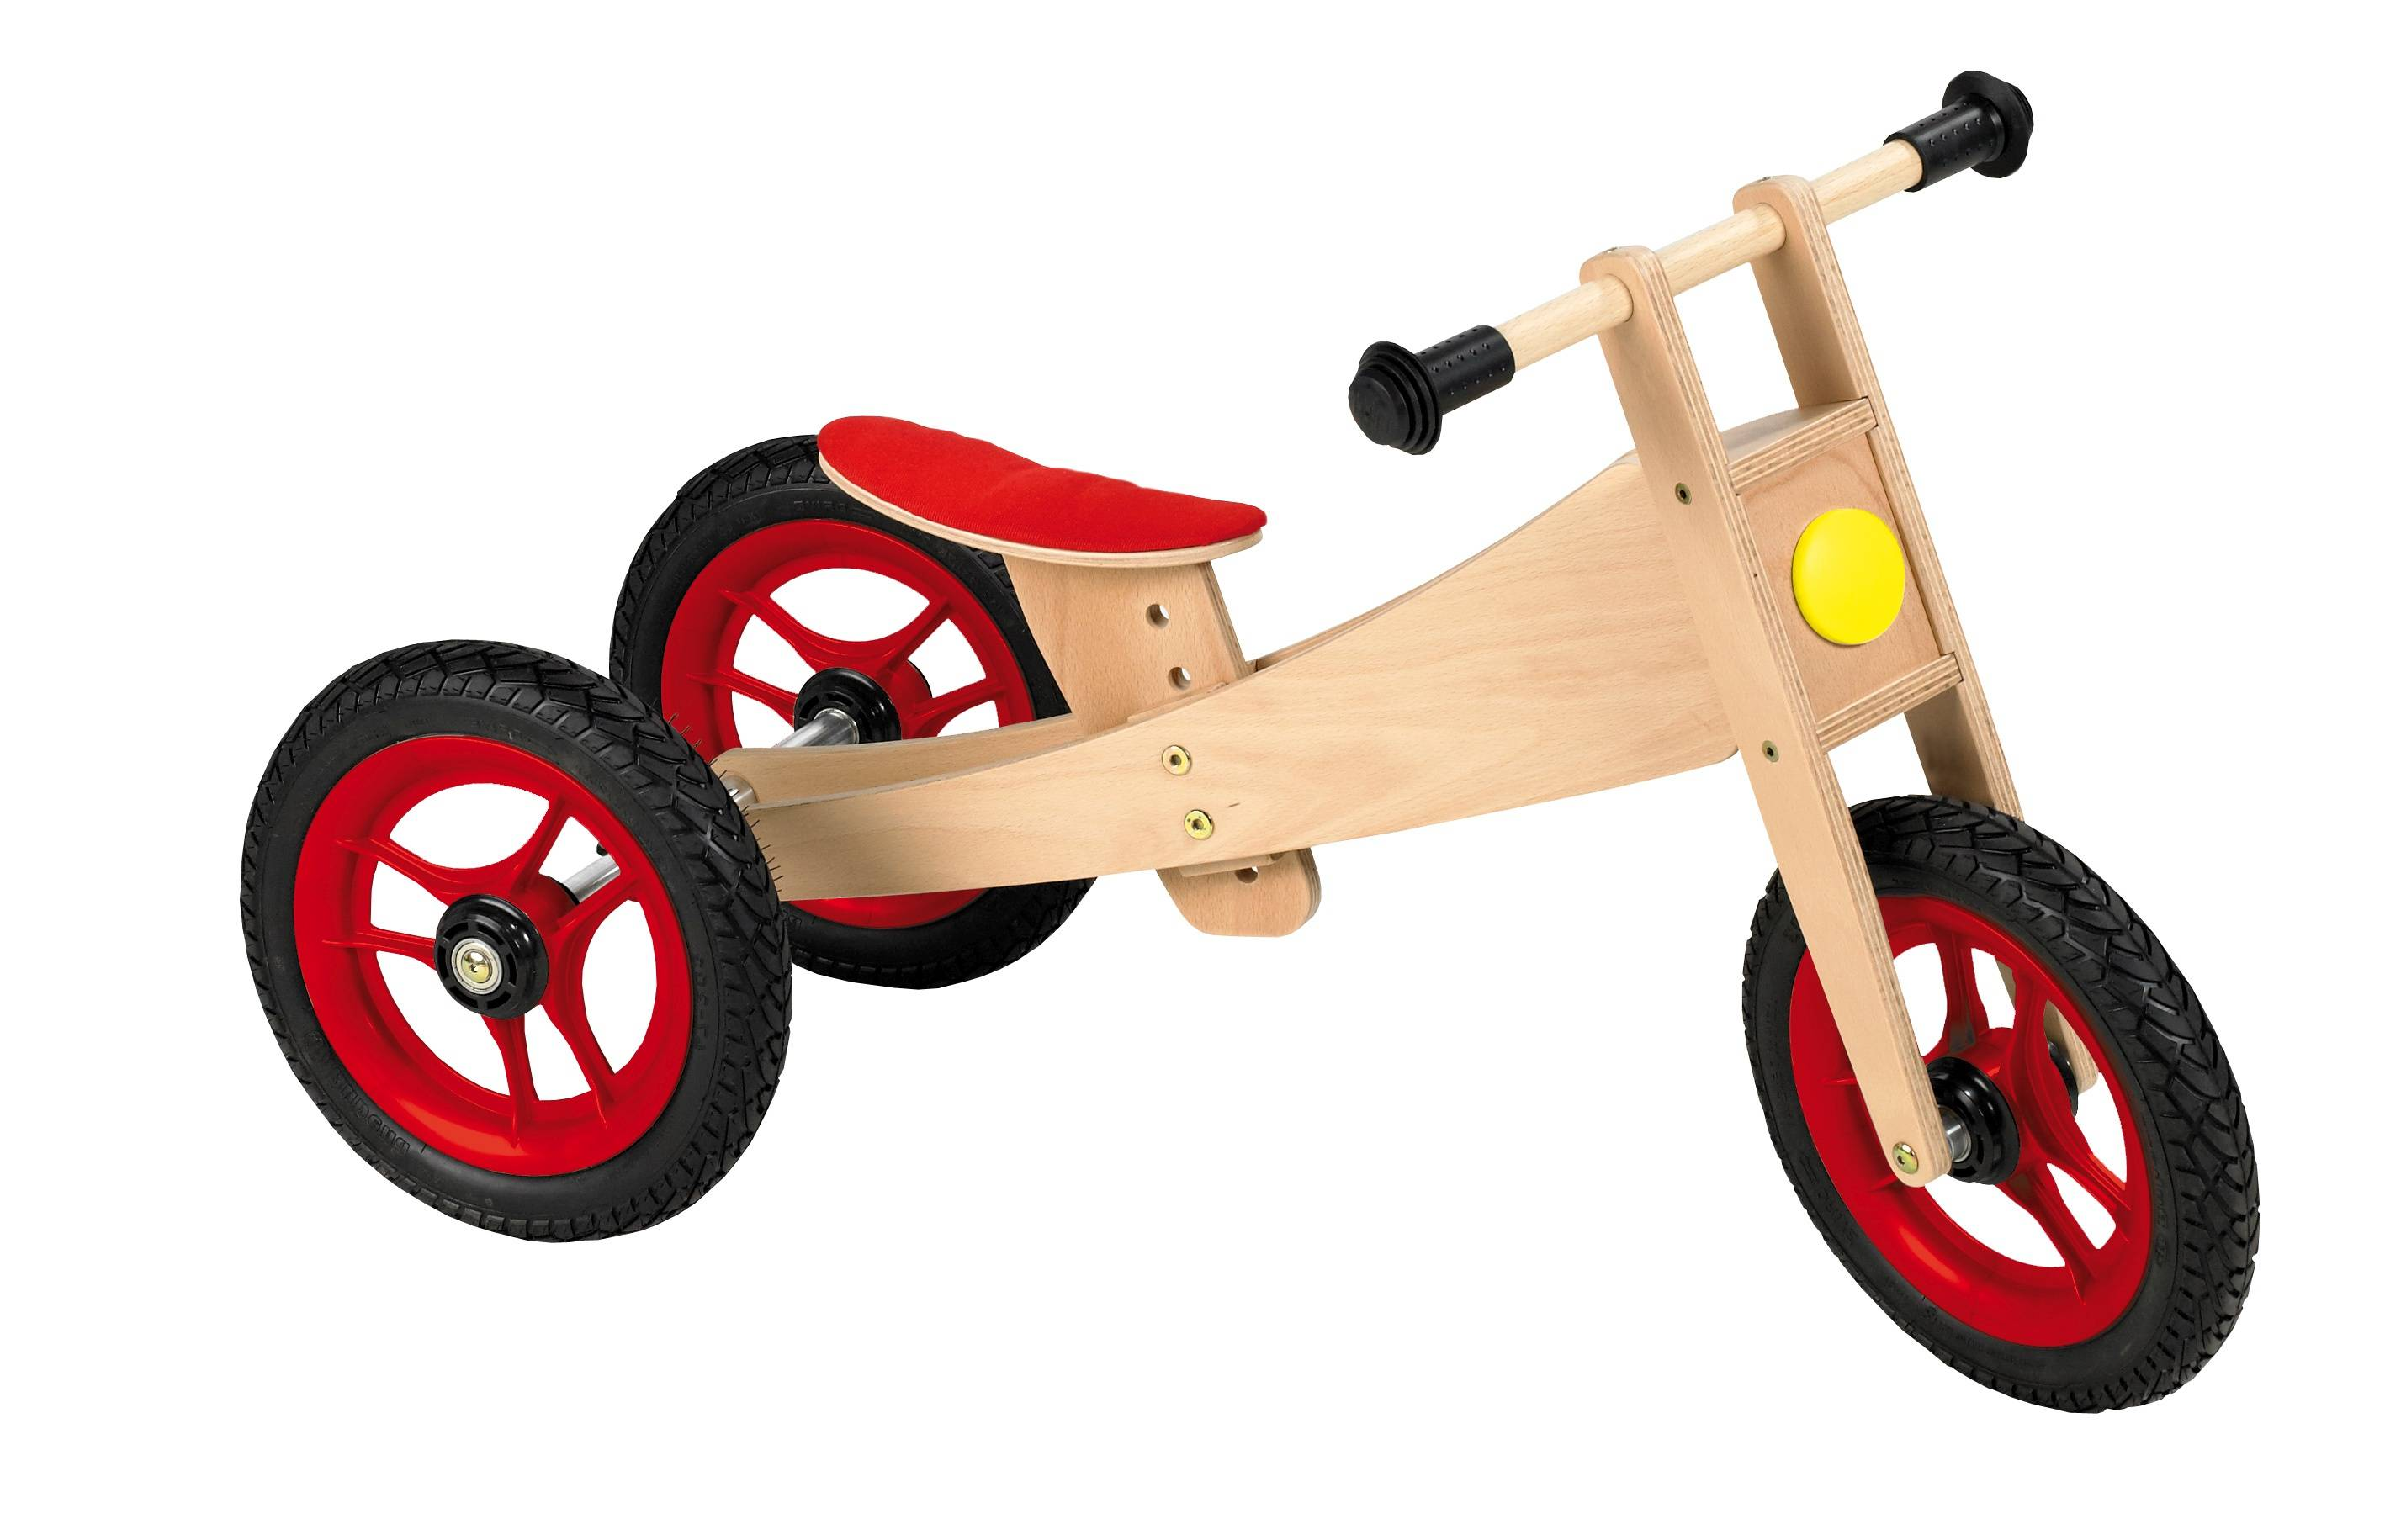 Geuther 2-in-1 balance bike;